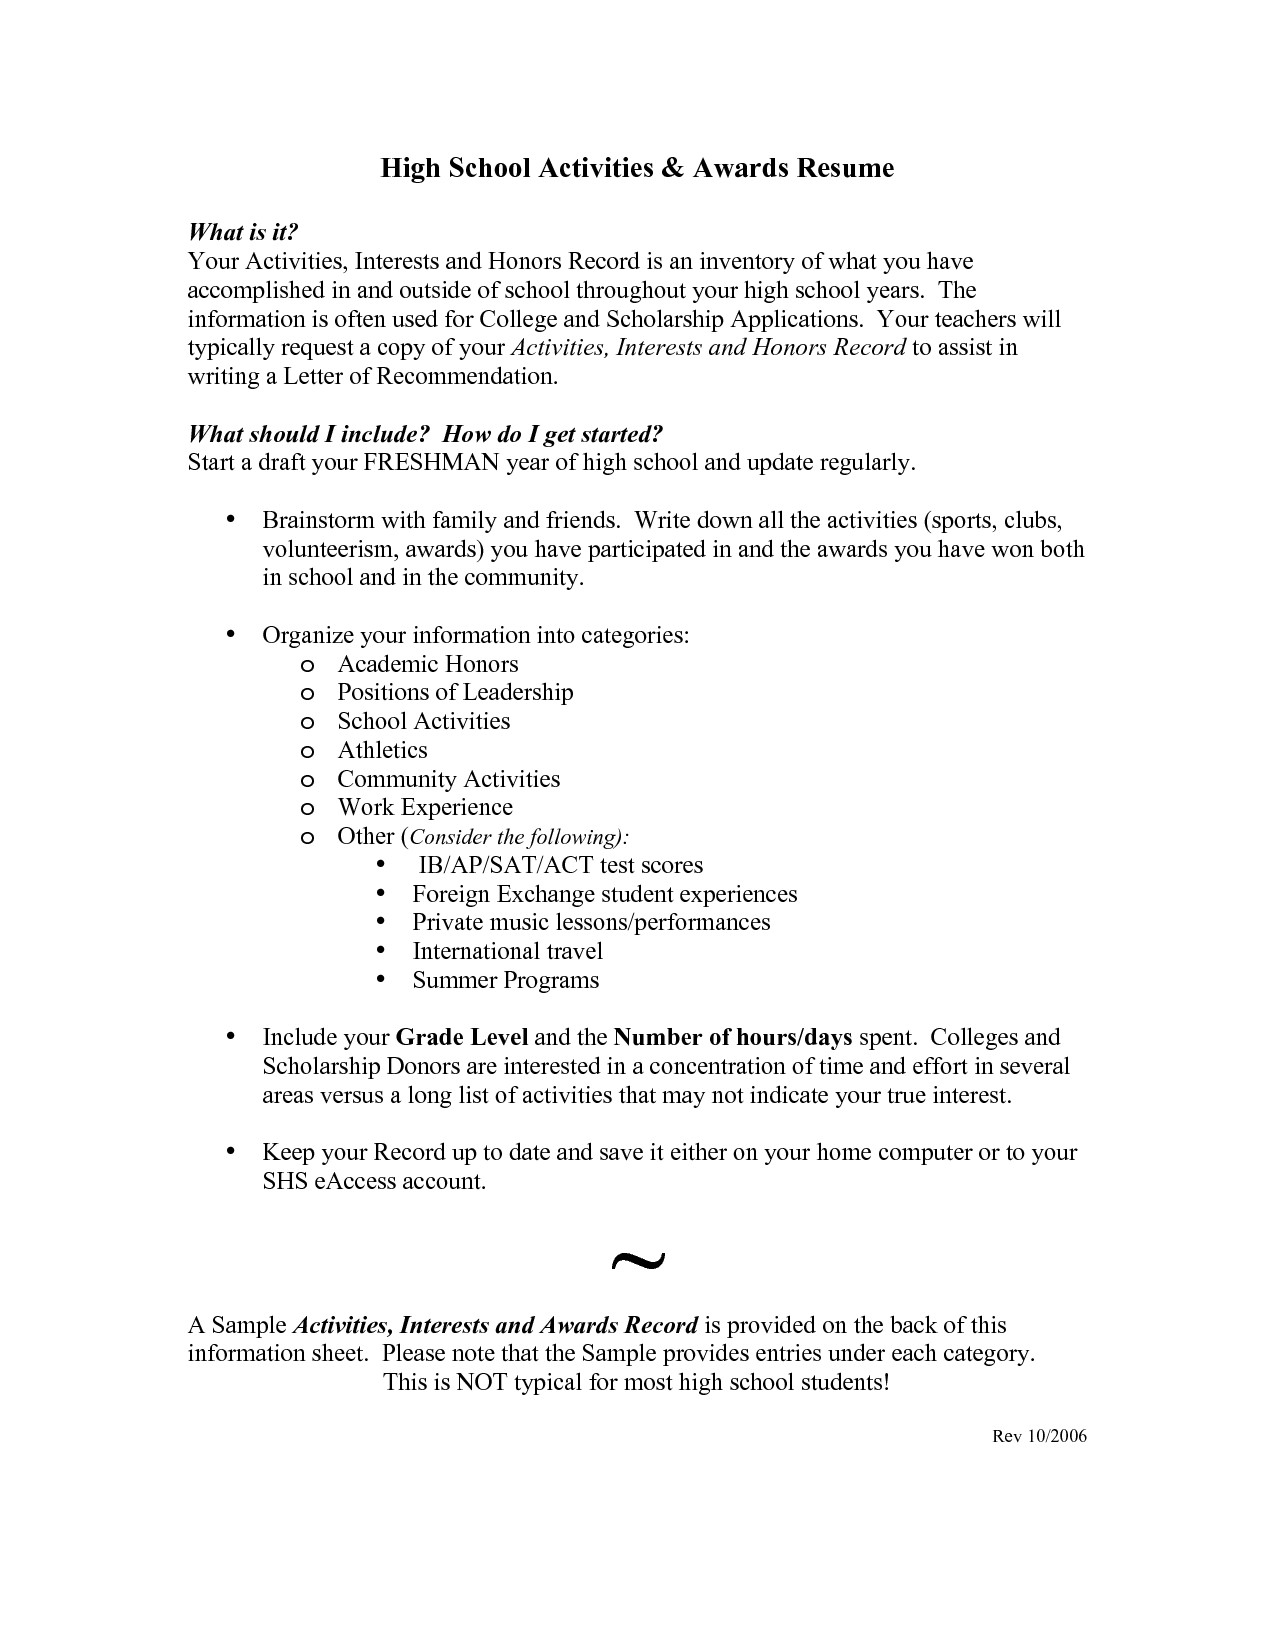 College Admissions Resume Templates Example Resume for High School Student for College